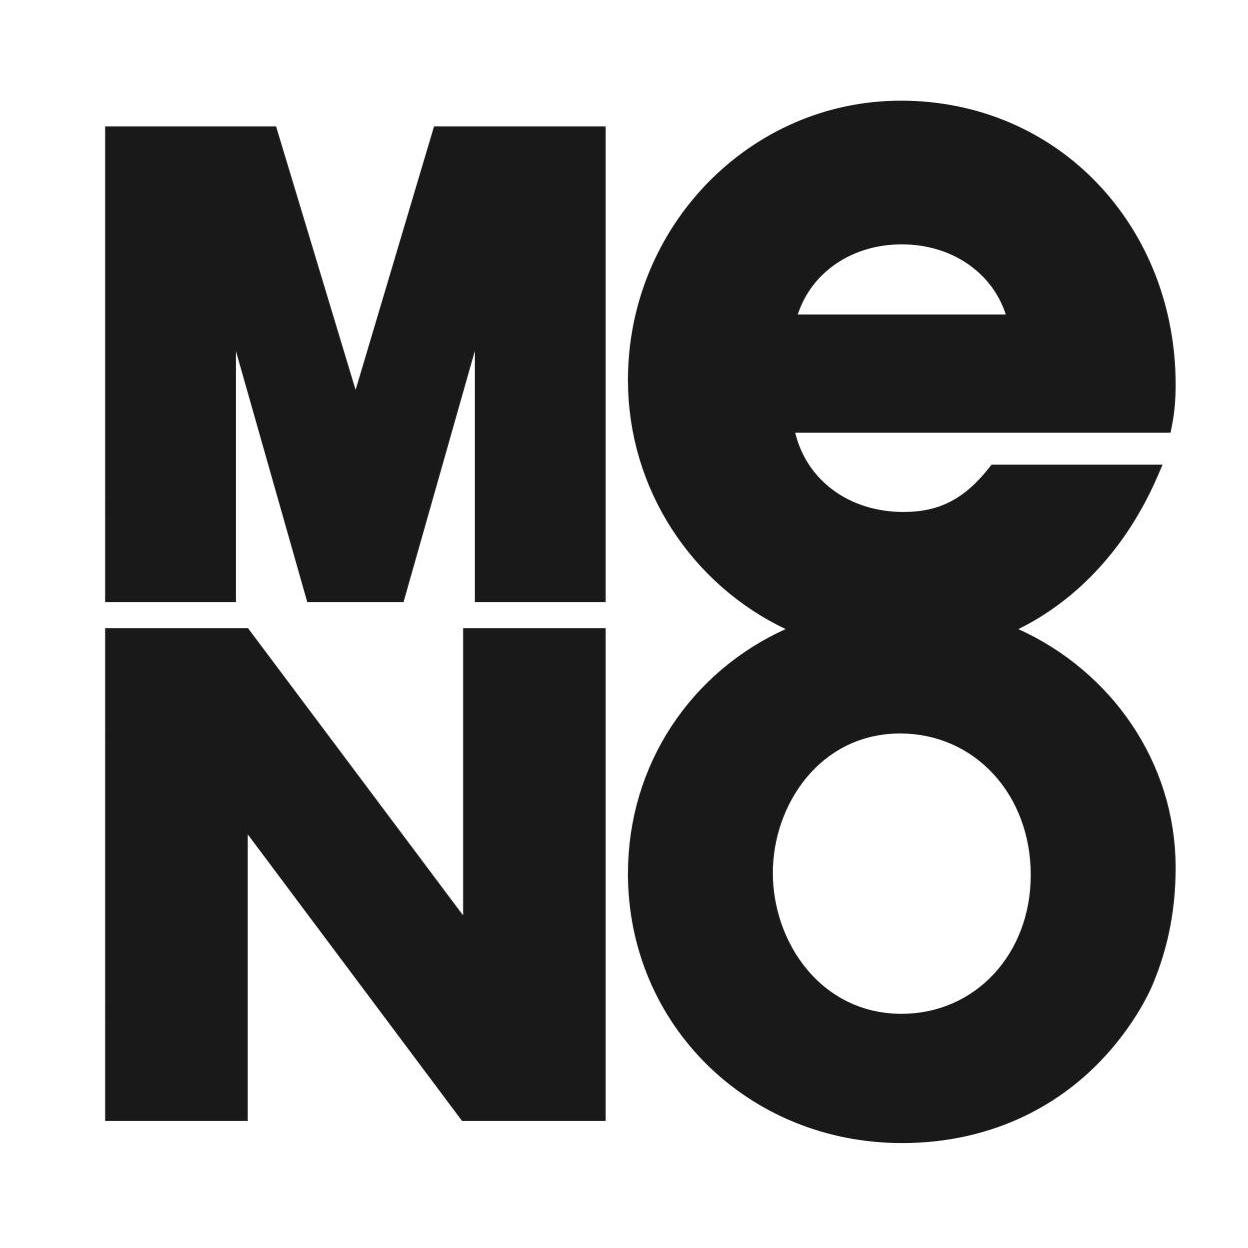 the meno Meno (/ ˈ m iː n oʊ / greek: μένων) is a socratic dialogue written by plato (steph 70–100) it appears to attempt to determine the definition of virtue, or arete, meaning virtue in.